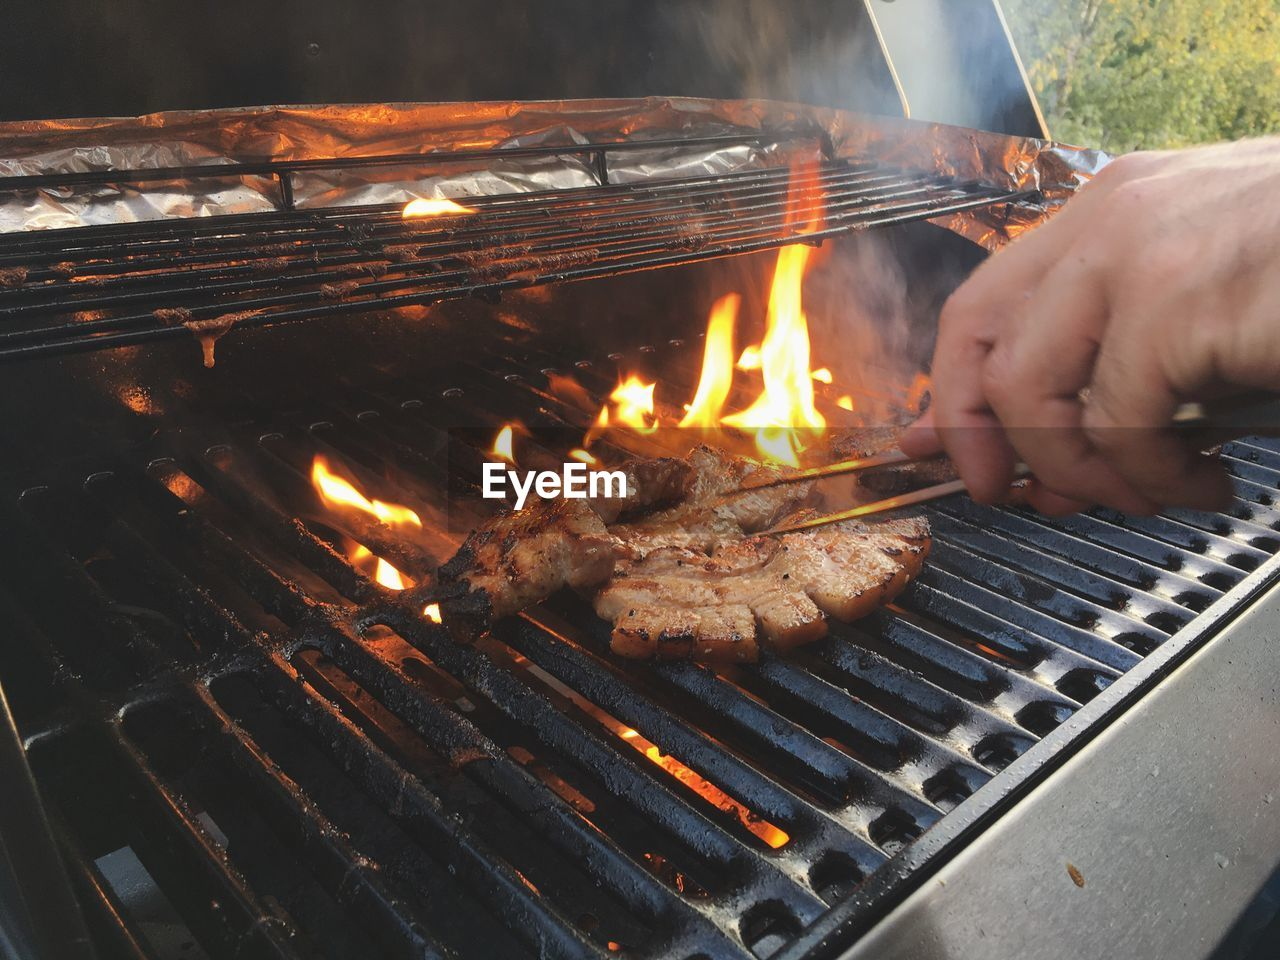 barbecue, barbecue grill, grilled, heat - temperature, meat, food and drink, real people, flame, food, human hand, one person, burning, preparation, outdoors, coal, human body part, preparing food, leisure activity, sausage, men, day, freshness, fire pit, close-up